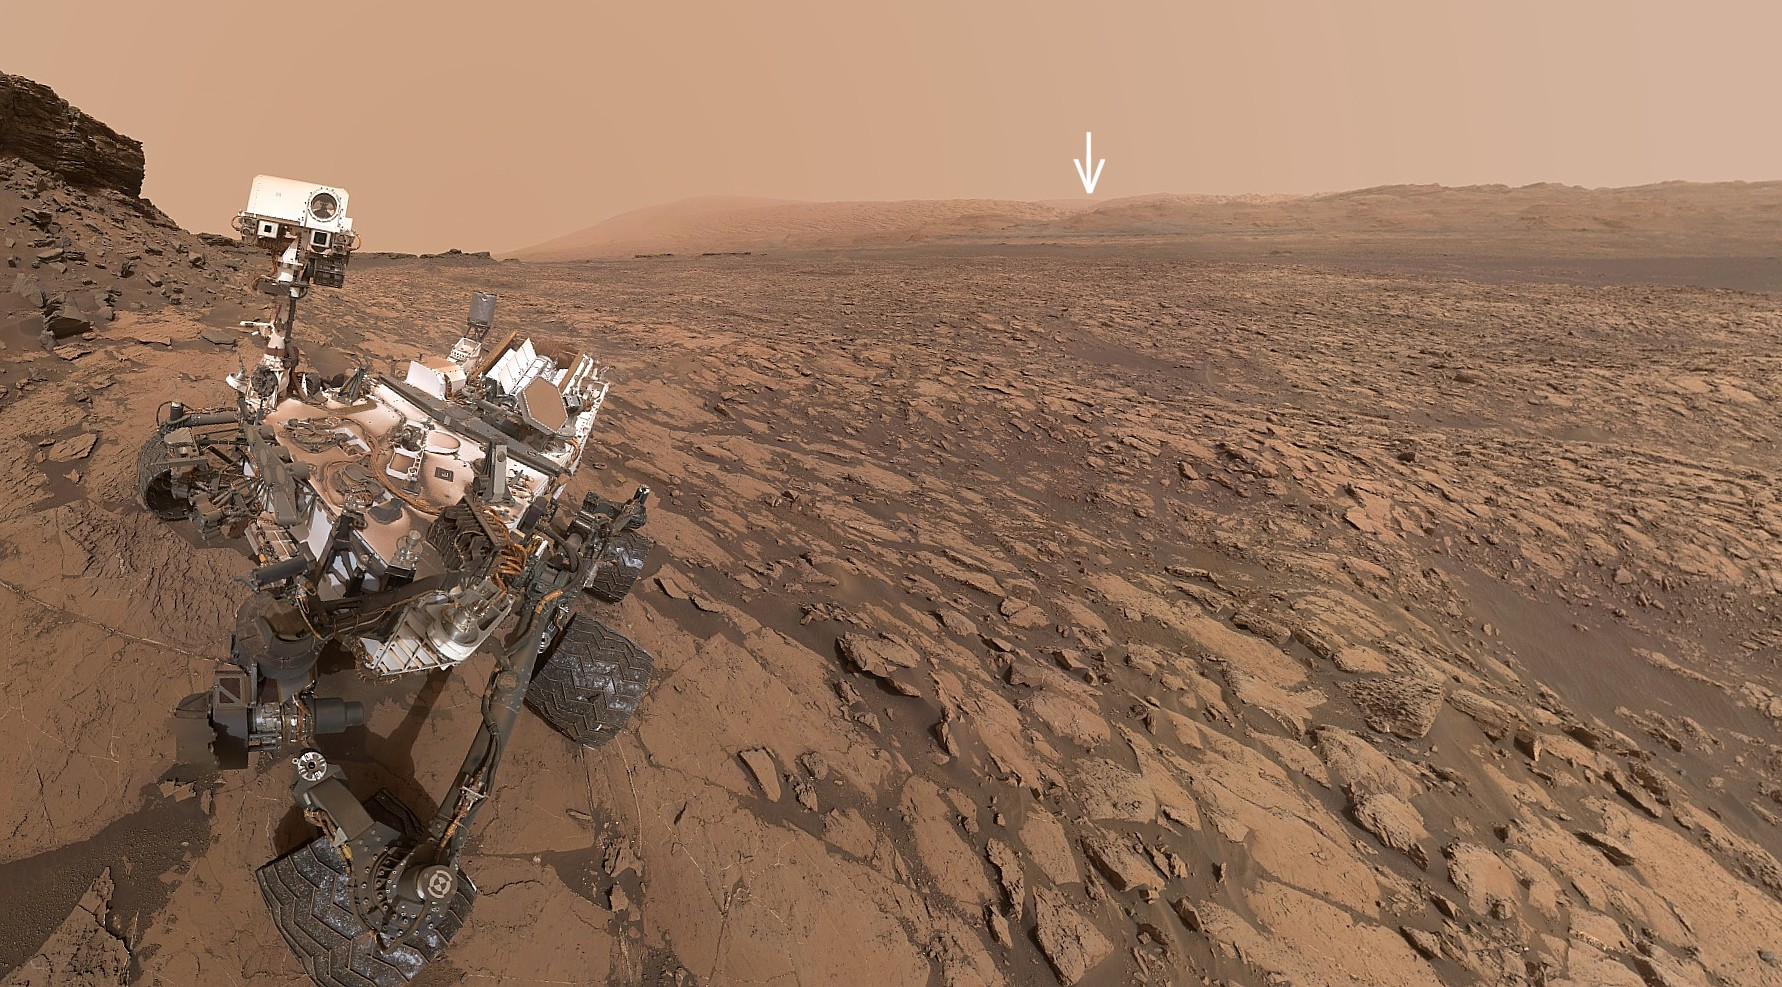 msl-curiosity-murray-buttes-selfie-pia20844-detail-6